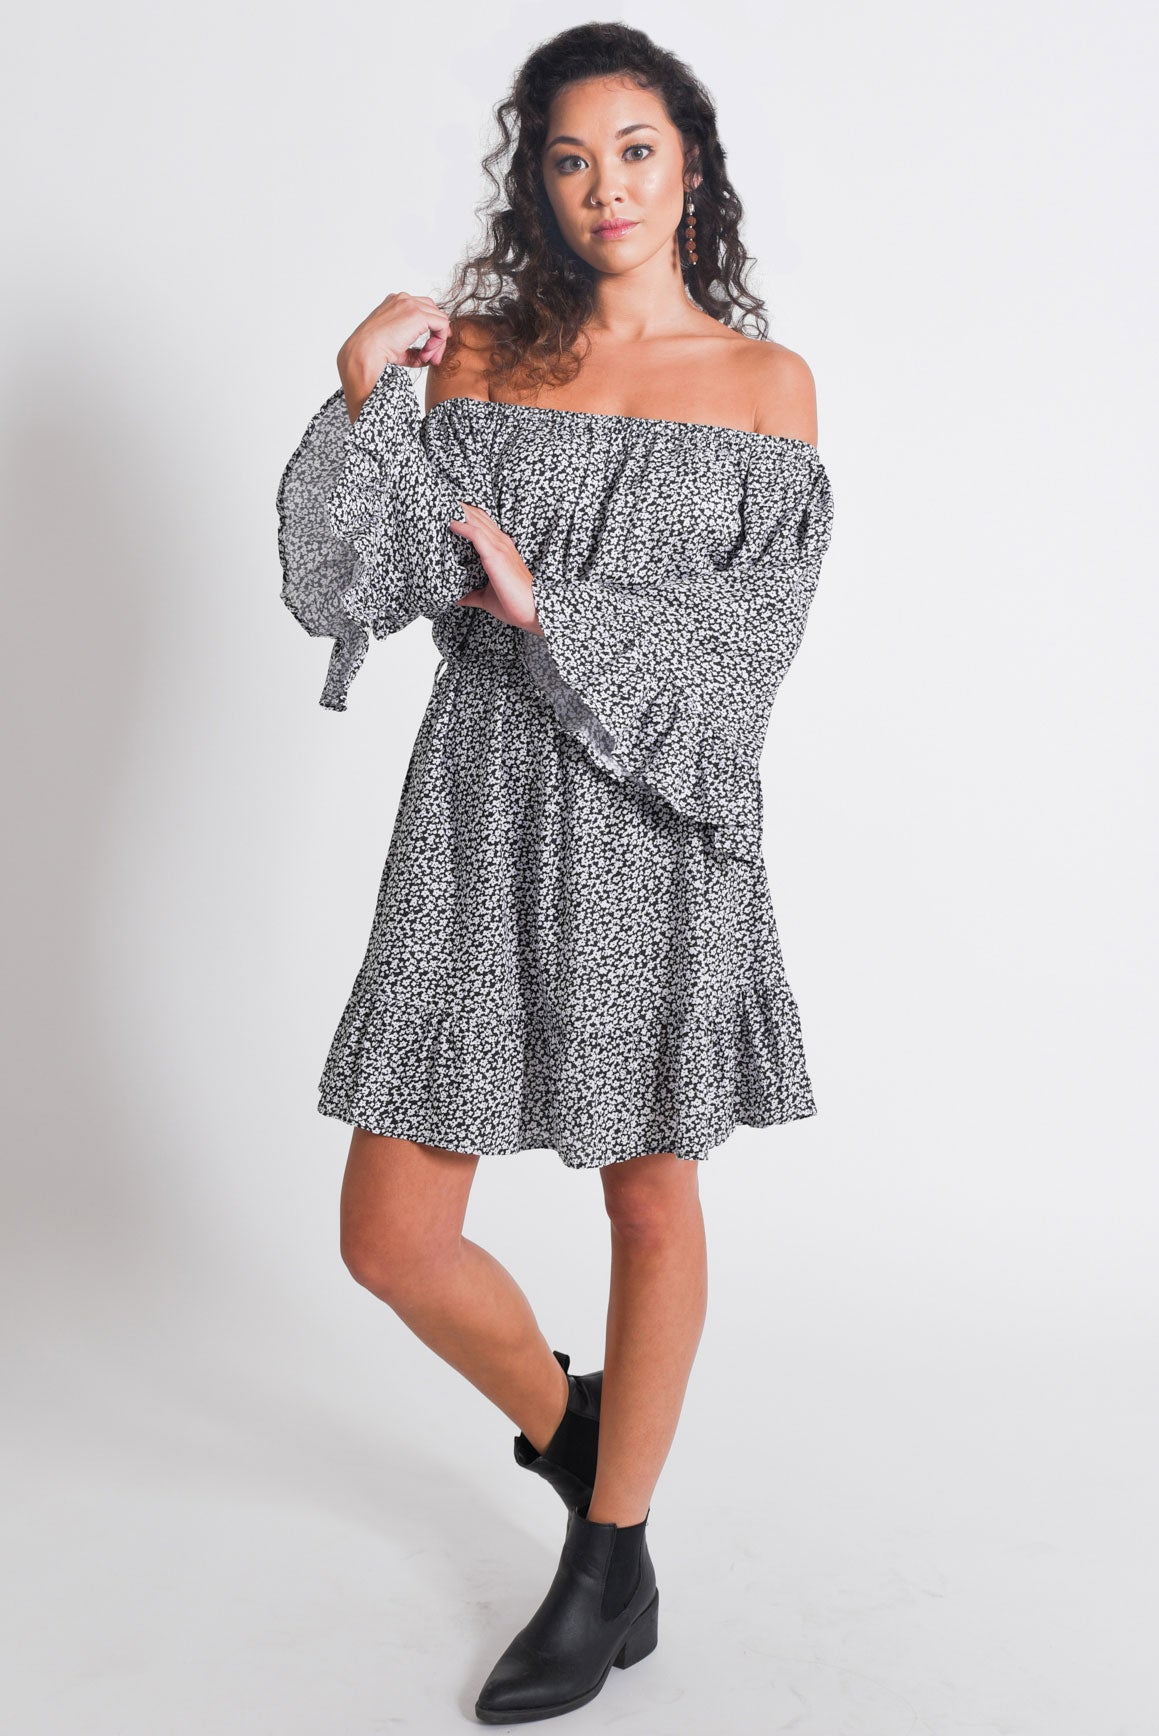 Off Shoulder Dresses with Sleeves